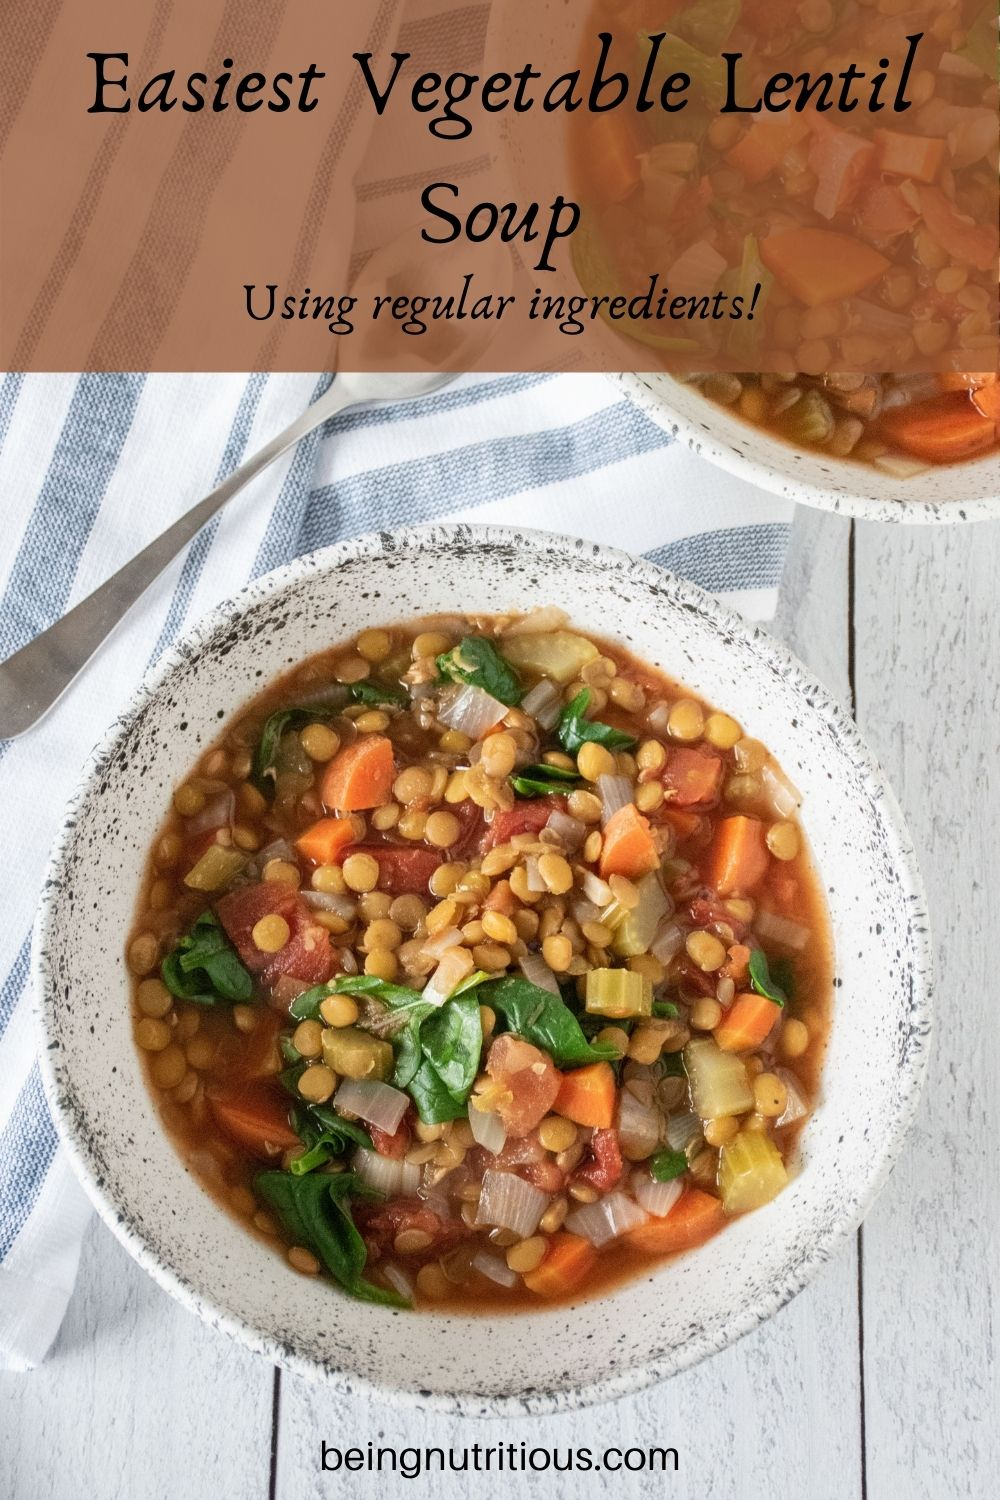 Lentil soup in a bowl. Text overlay: Easiest Vegetable Lentil soup; using regular ingredients!